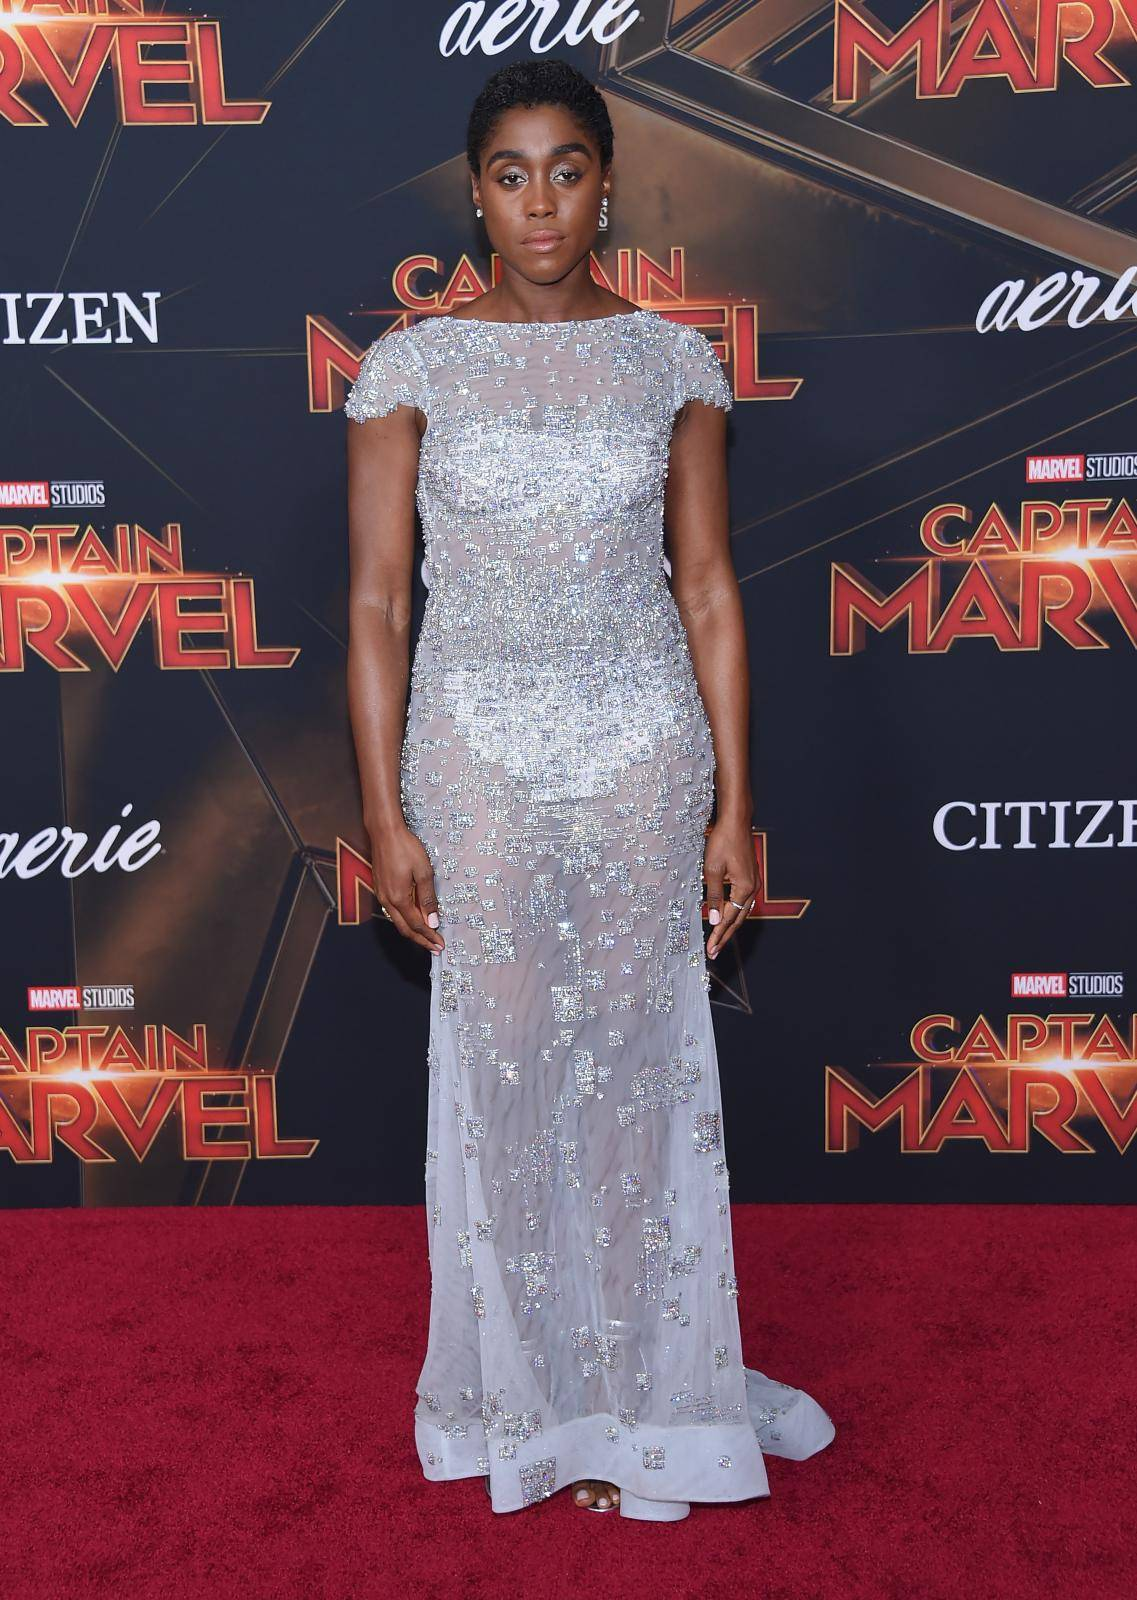 Captain Marvel Premiere - Los Angeles